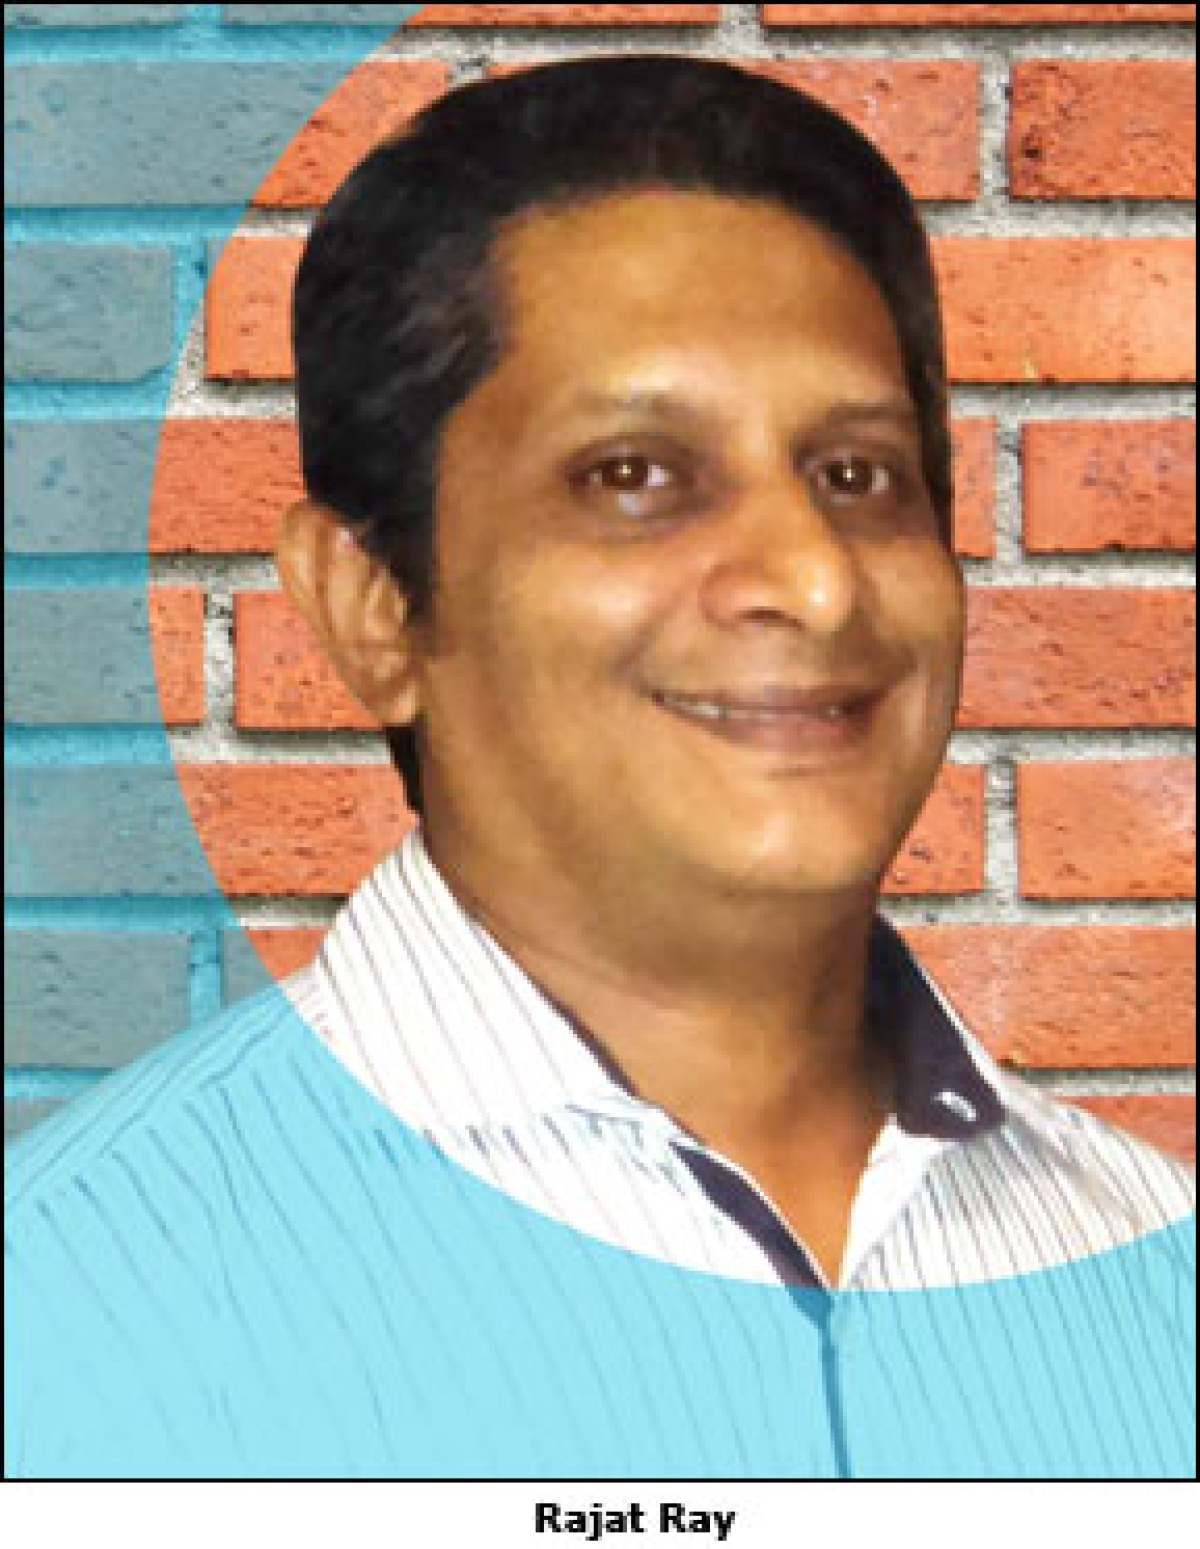 DDB Mudra South & East appoints Rajat Ray as associate vice president